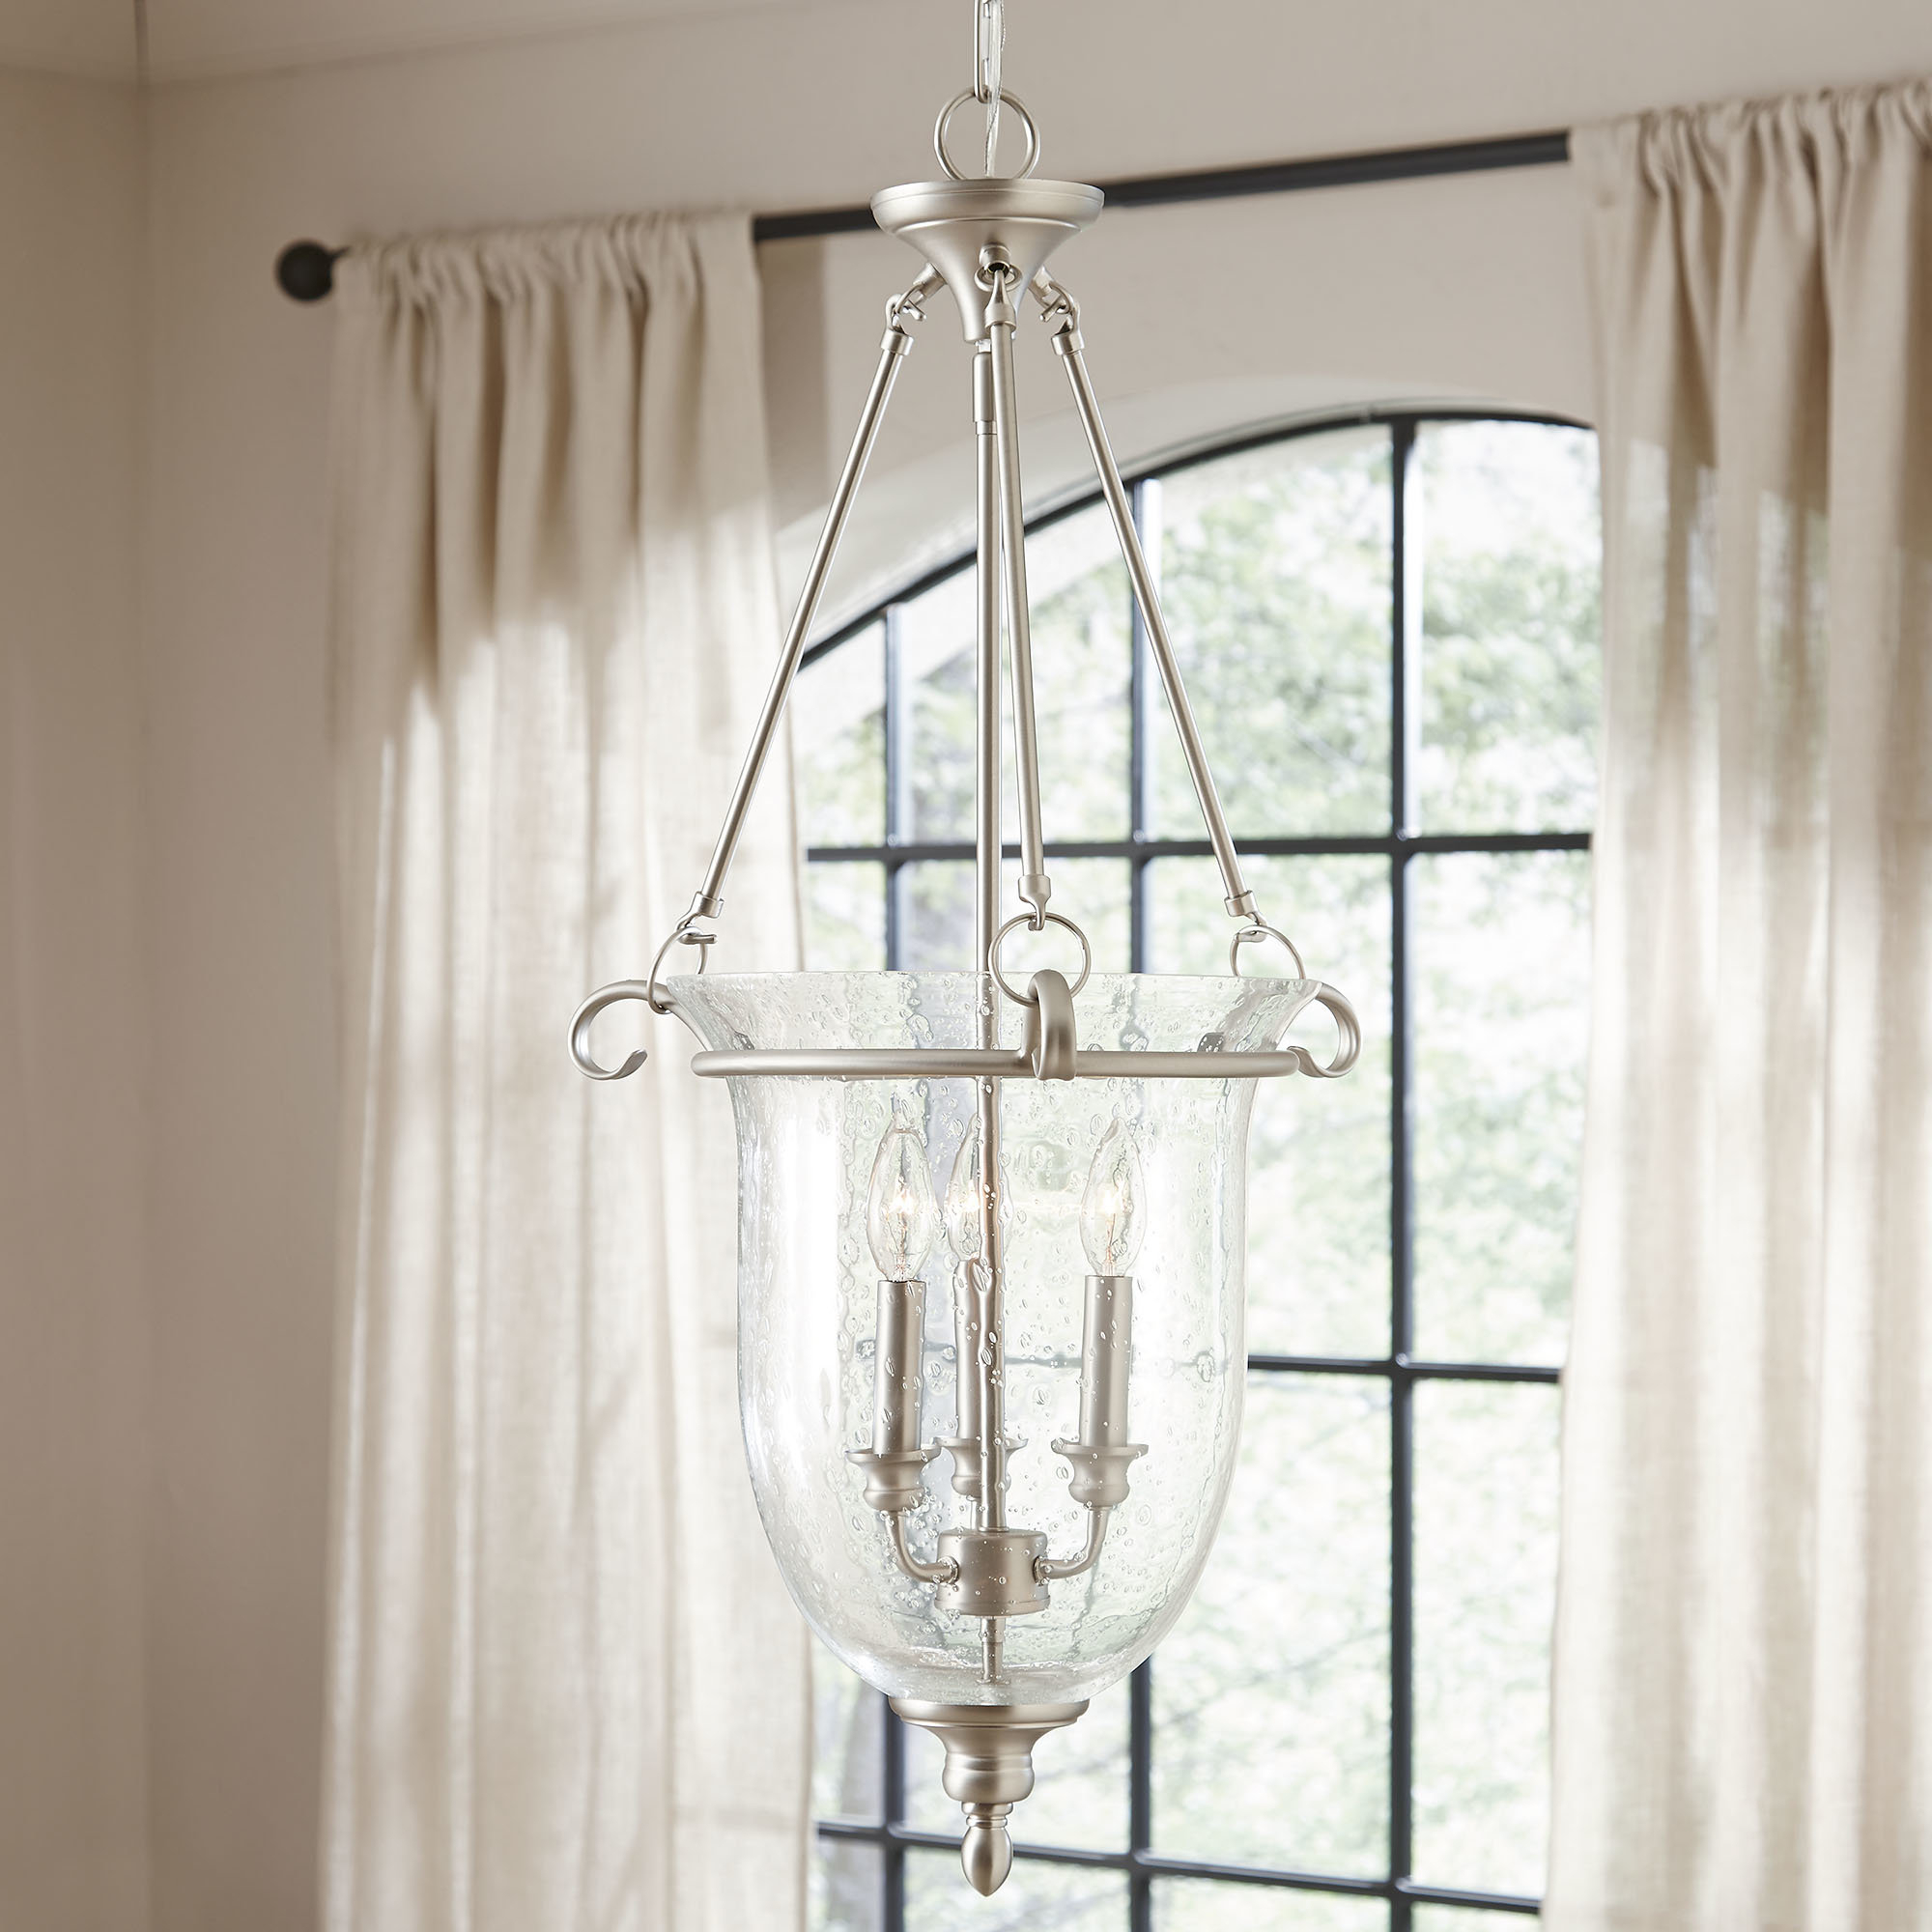 3 Light Single Urn Pendant Within Rockland 4 Light Geometric Pendants (View 22 of 30)